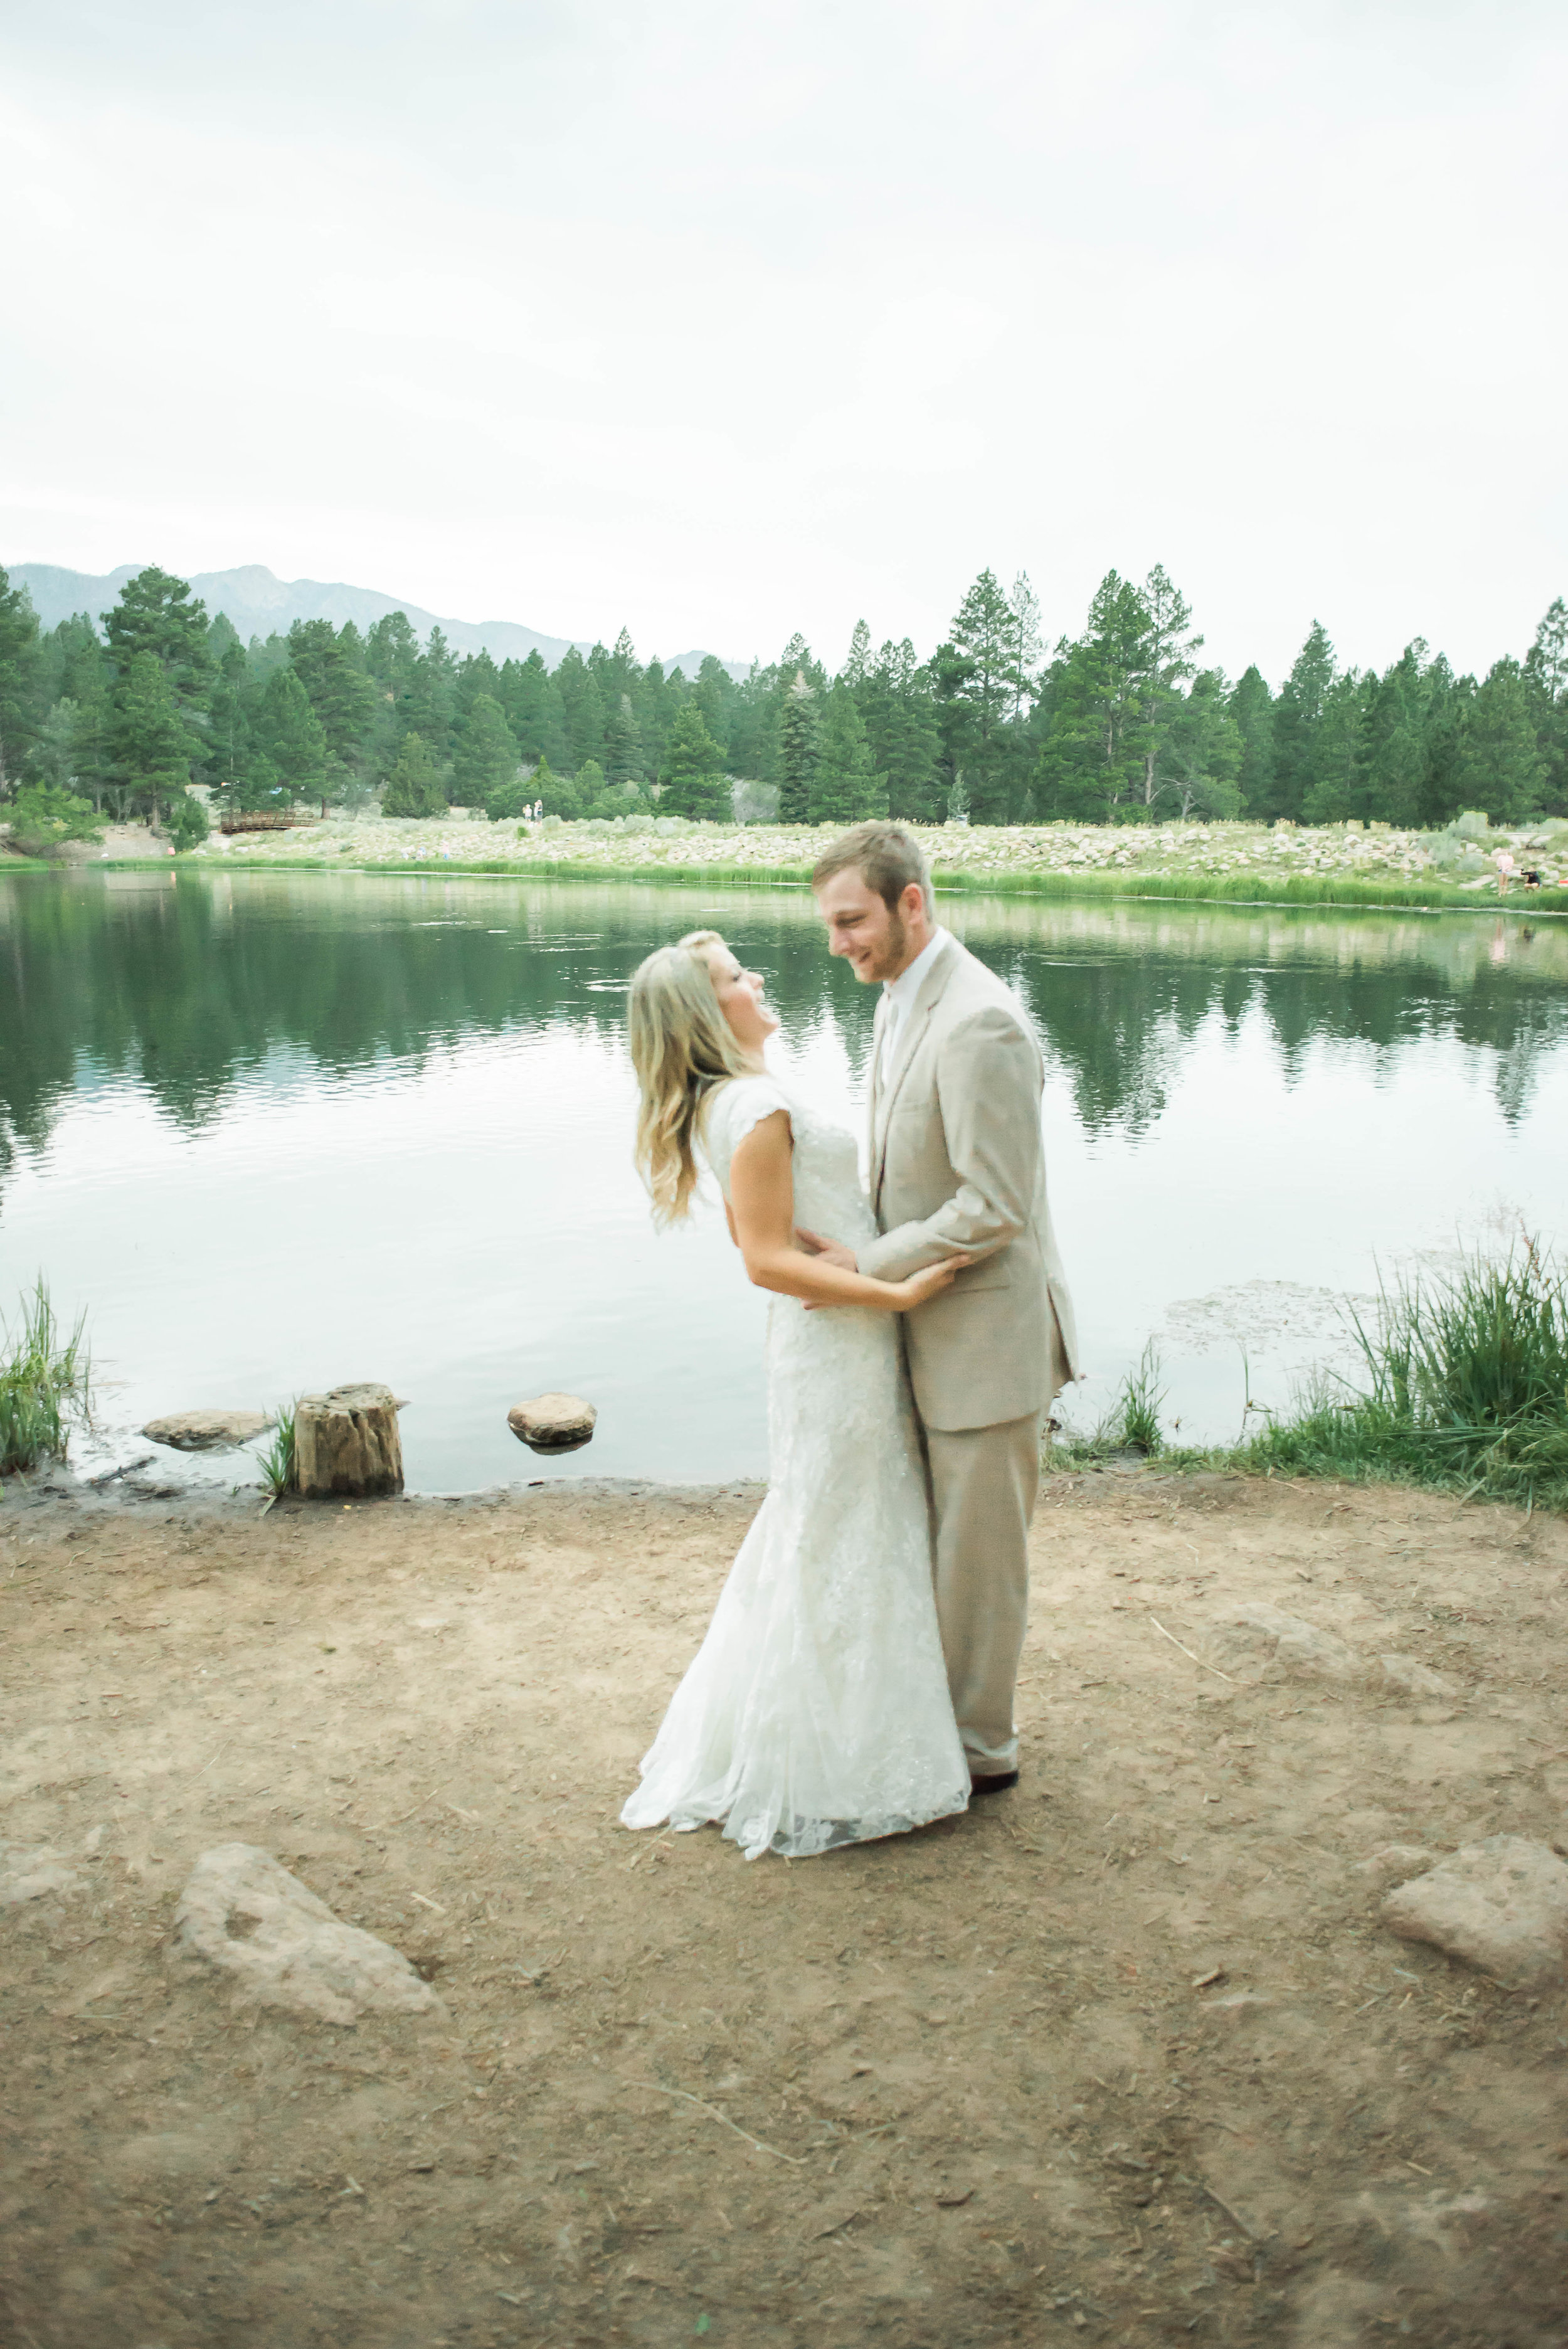 DANIEL+LACI-Sadie_Banks_Photography-138.jpg